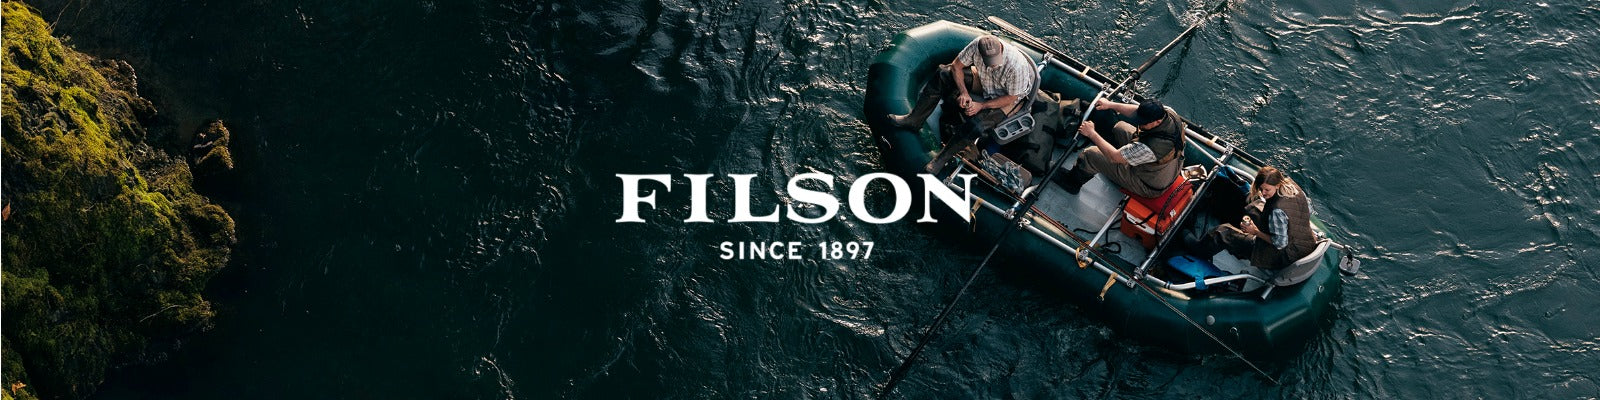 Filson apparel, bags and other accessories available online at Sportique.